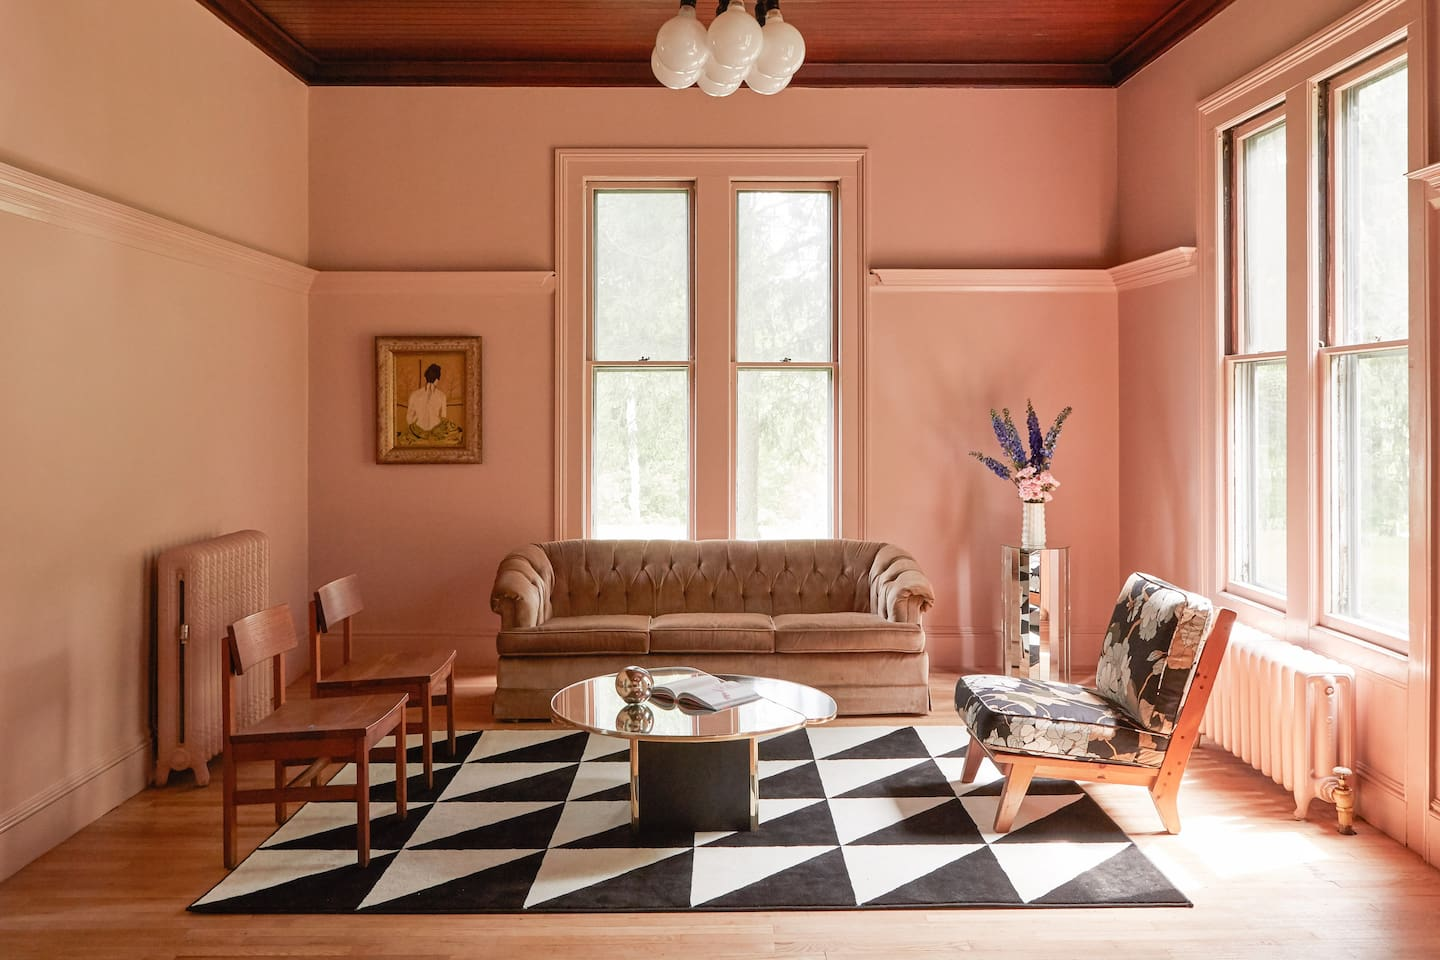 The Filomena: Historical charm + modern design - Houses for Rent in ...